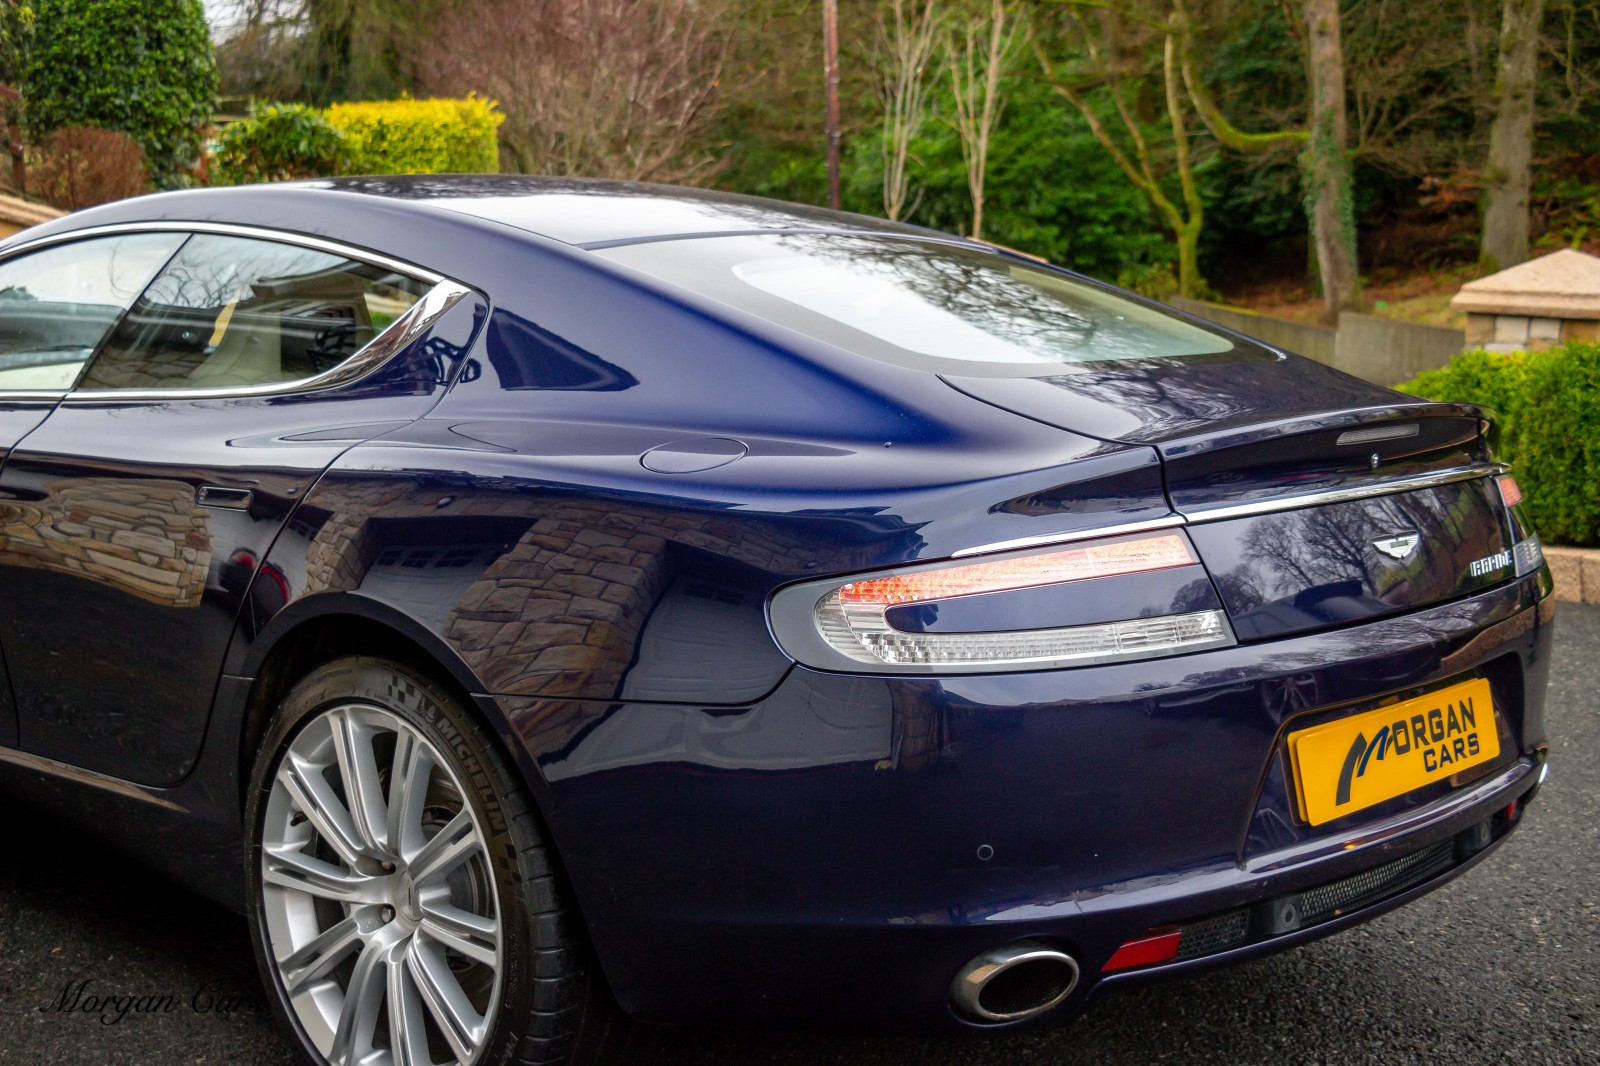 2010 Aston Martin Rapide 5.9 V12 TOUCHTRONIC Petrol Automatic – Morgan Cars 9 Mound Road, Warrenpoint, Newry BT34 3LW, UK full